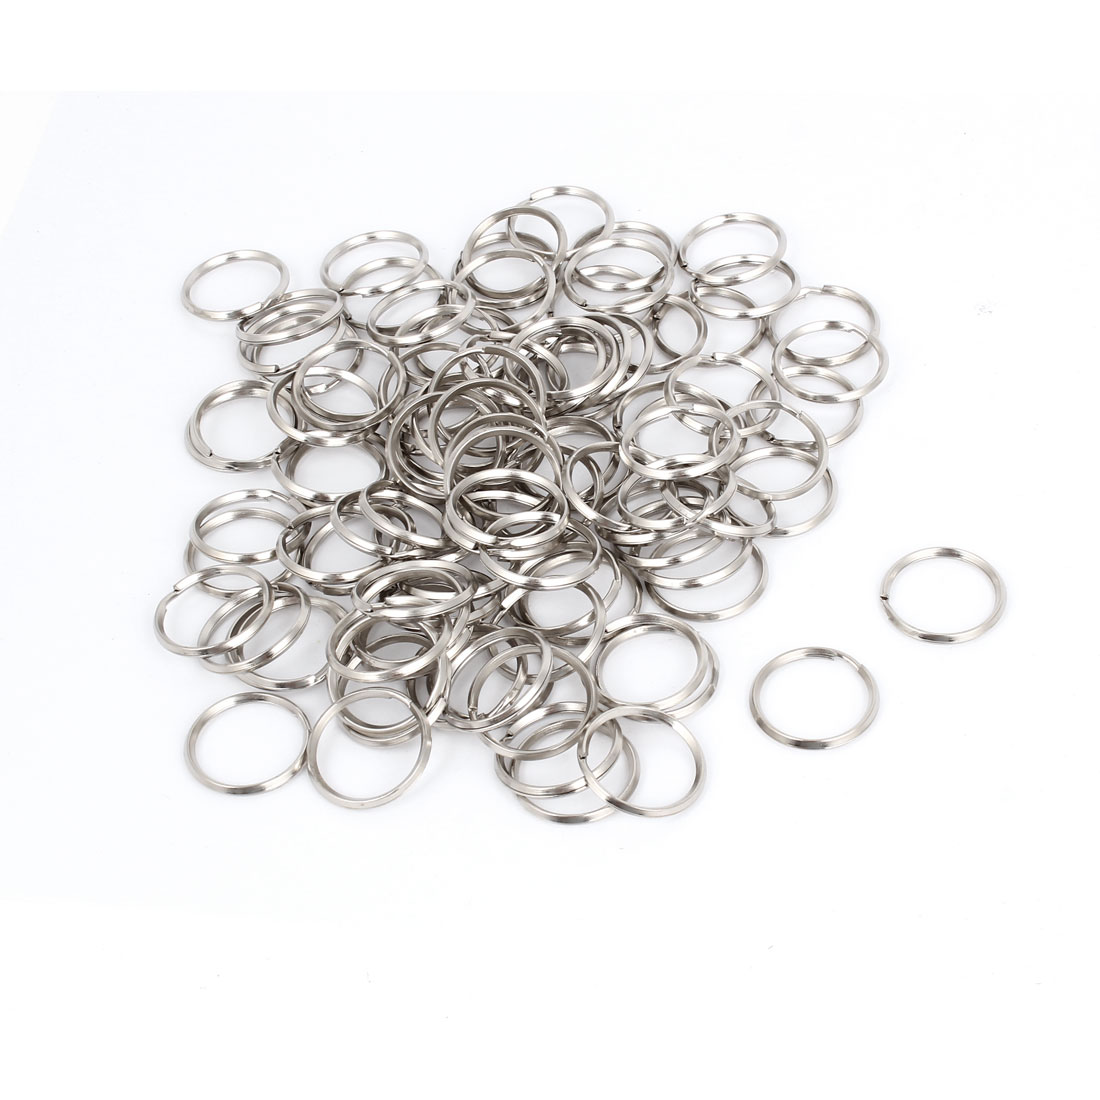 100 Pcs Silver Tone Metal 23mm OD Split Key Rings Keychains